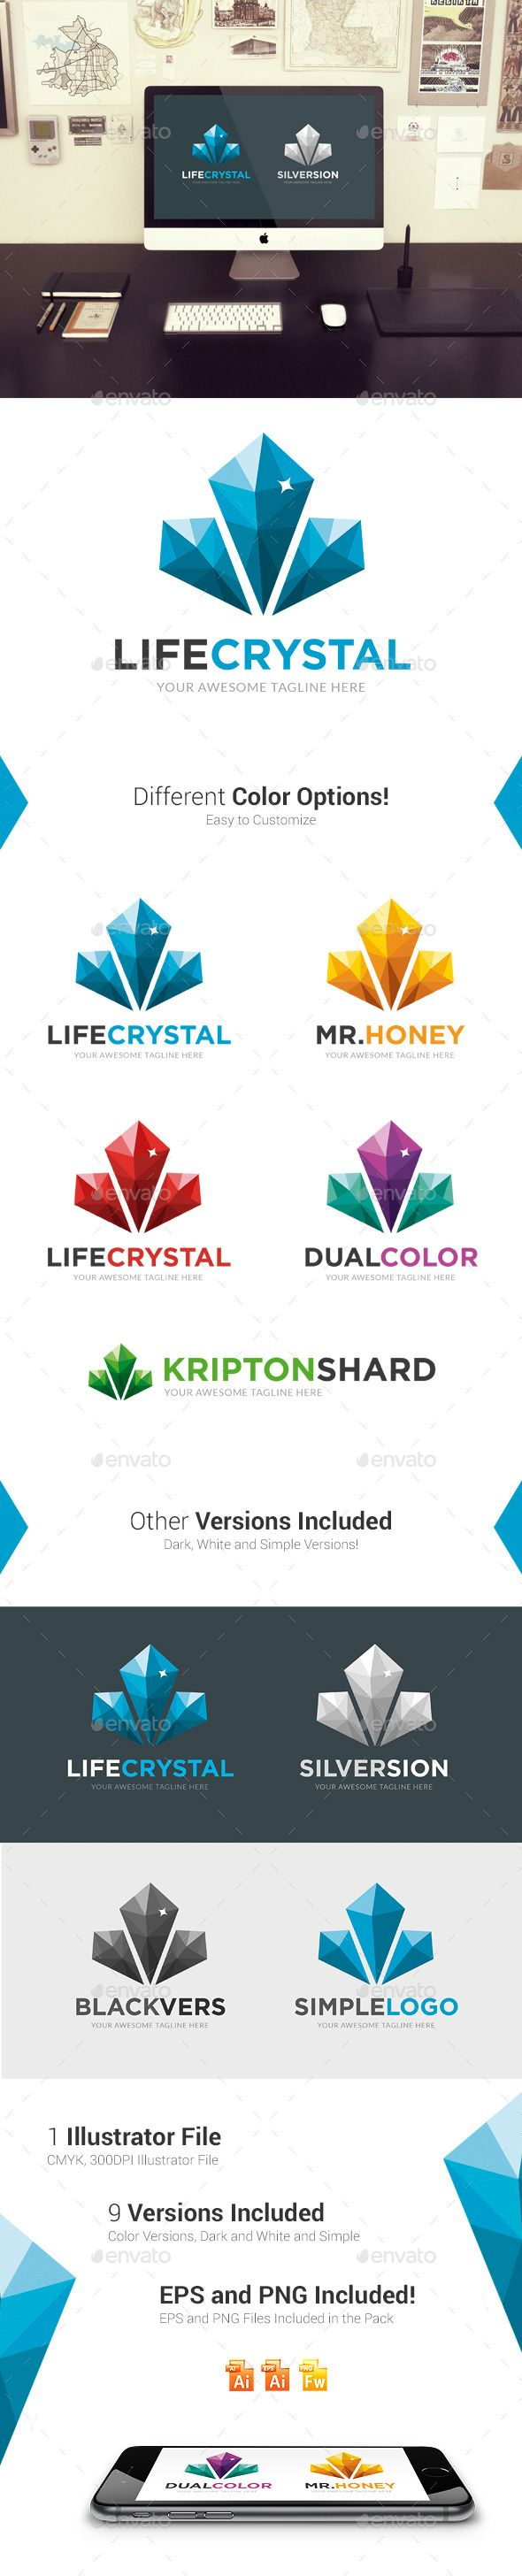 Life Crystal   Logo Design Template Vector #logotype Download it here: http://graphicriver.net/item/life-crystal-logo-template/10459351?s_rank=1434?ref=nesto